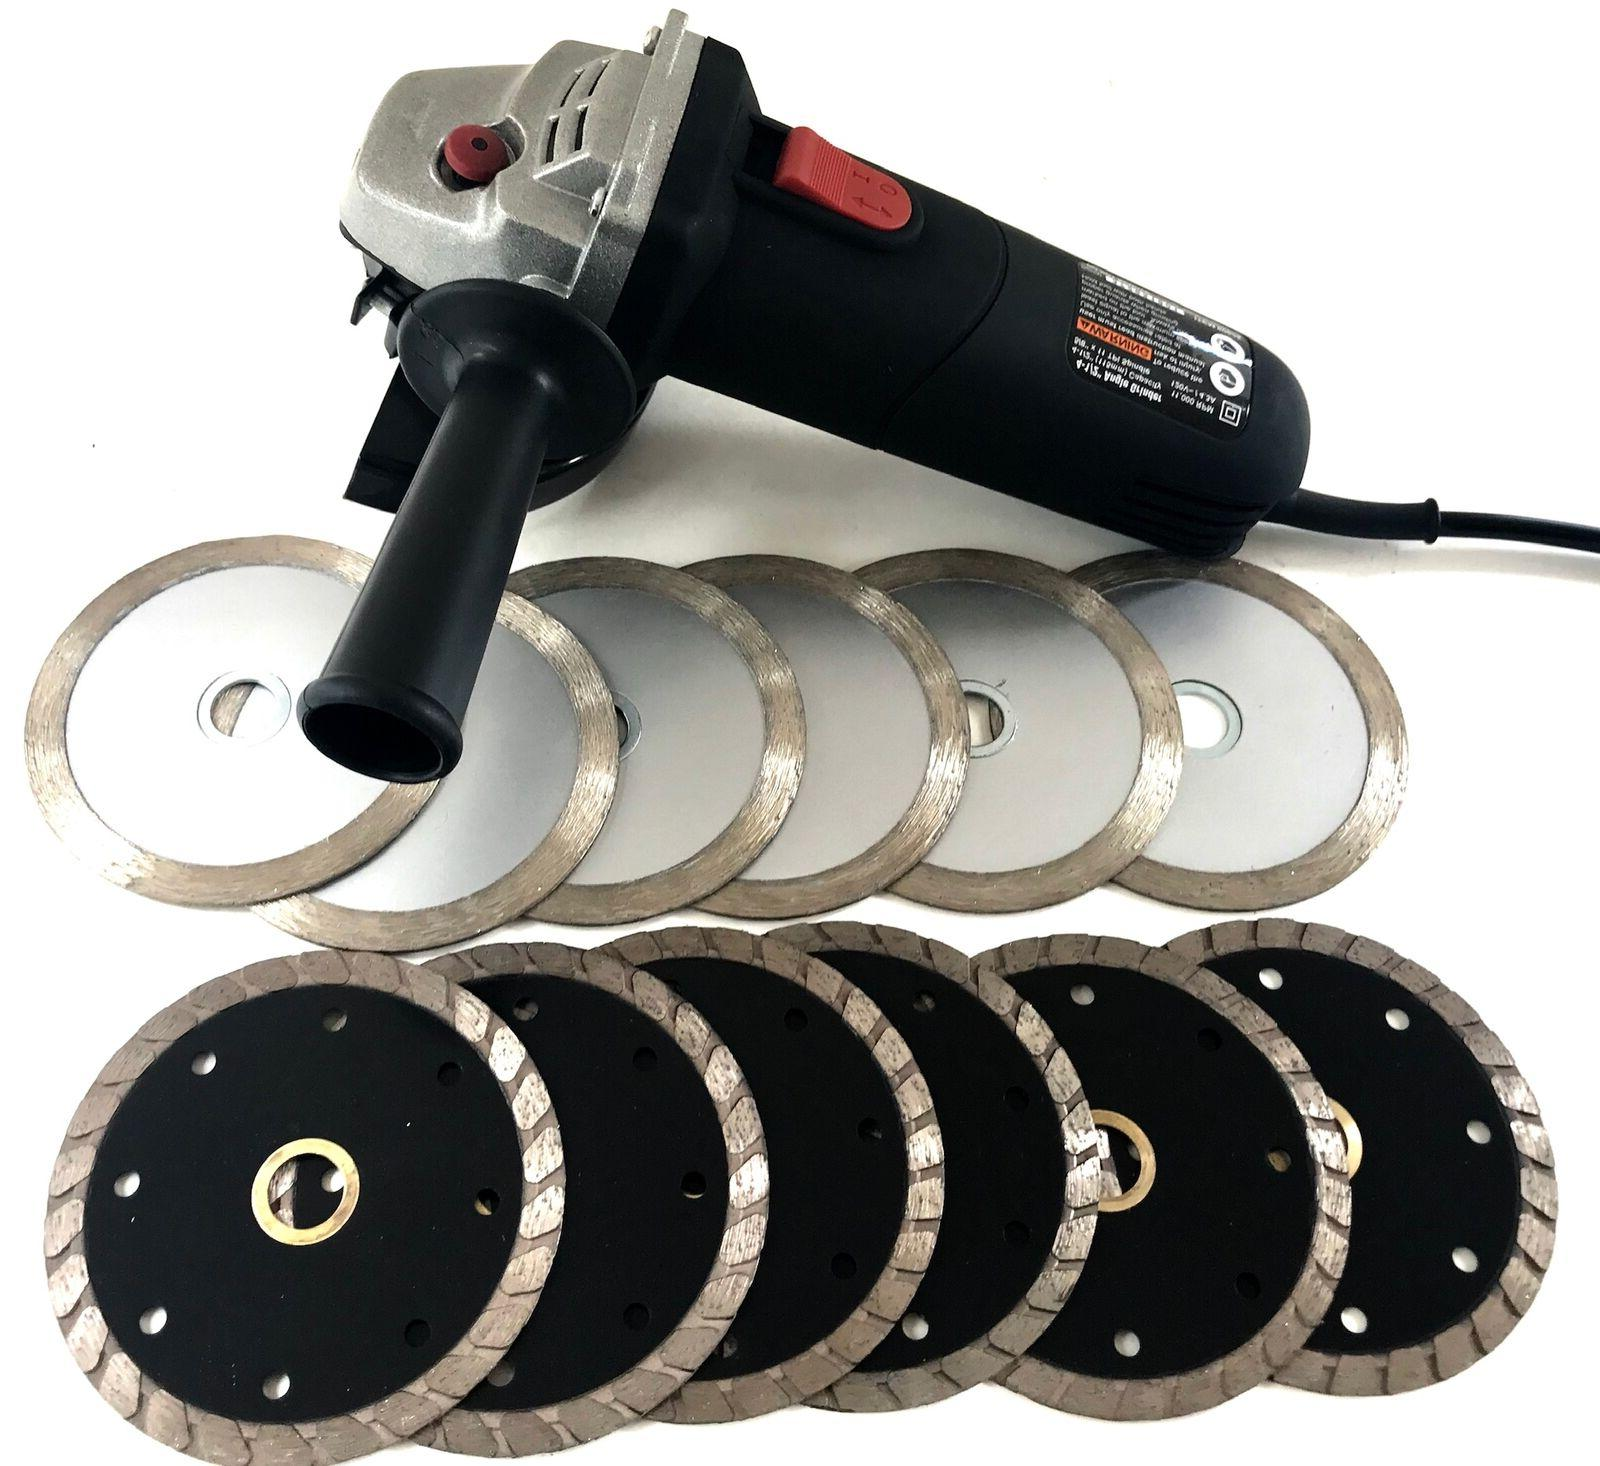 4 1 2 angle grinder with 12